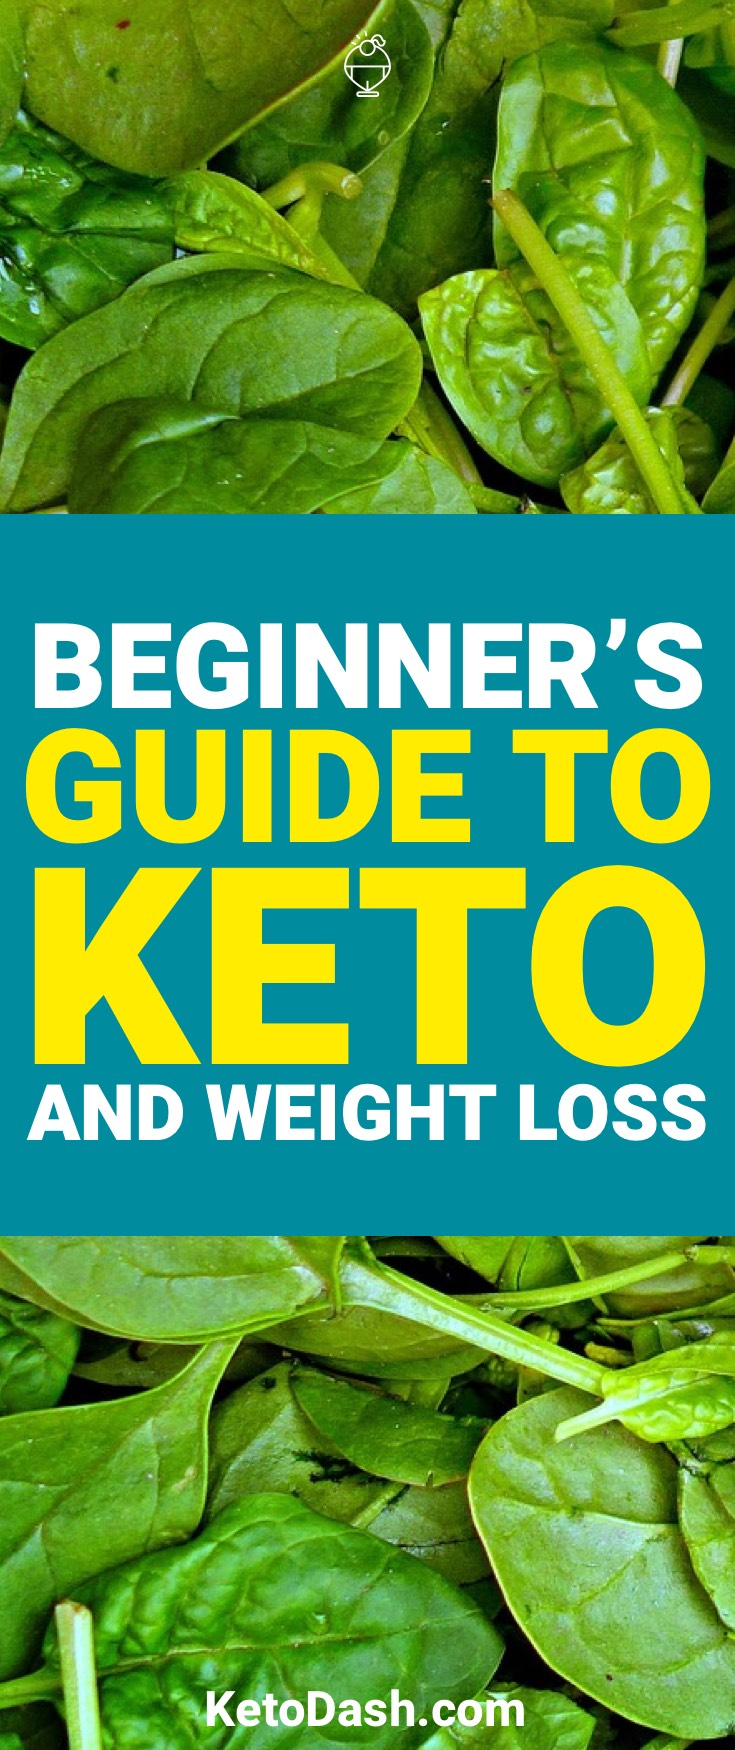 Learn about the ketogenic diet and how it can help you lose weight quickly along other health benefits.